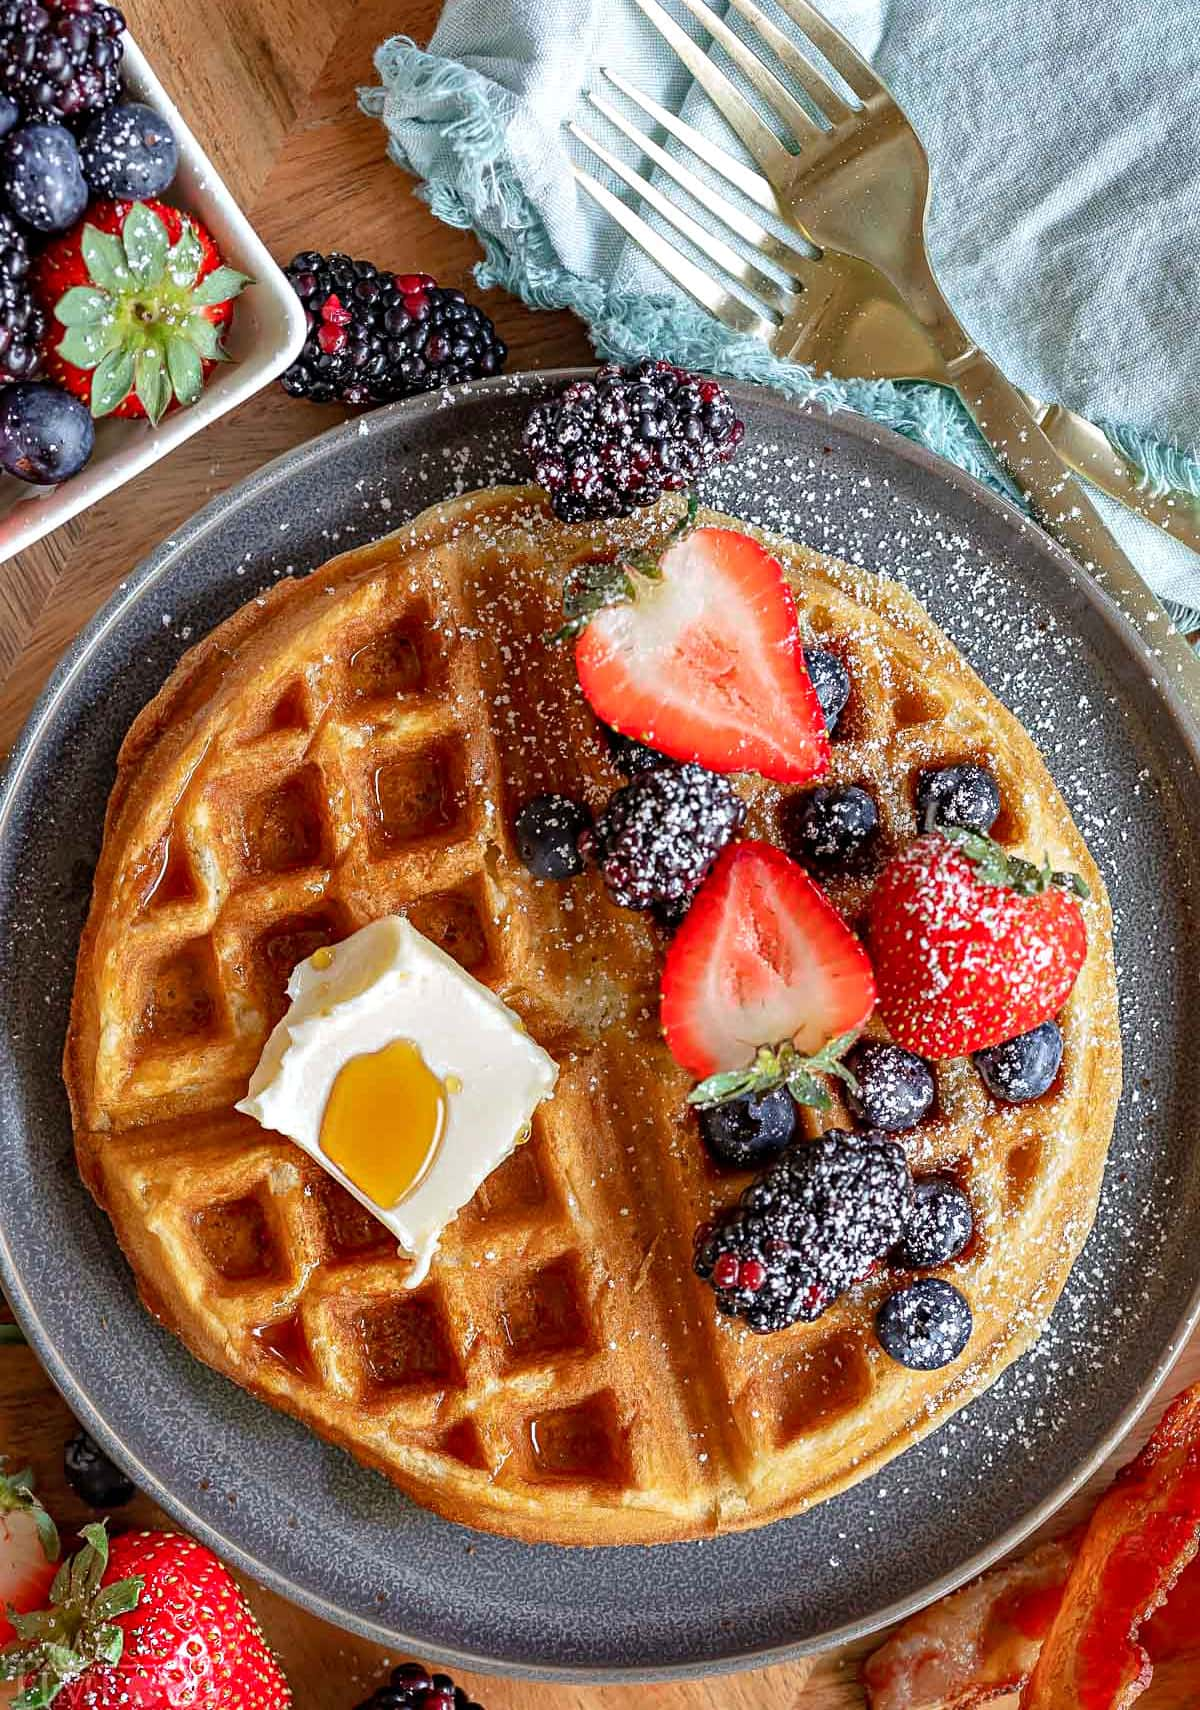 top down view of gray plate with one waffle. Half of the waffle topped with butter and syrup and half topped with berries and powdered sugar.